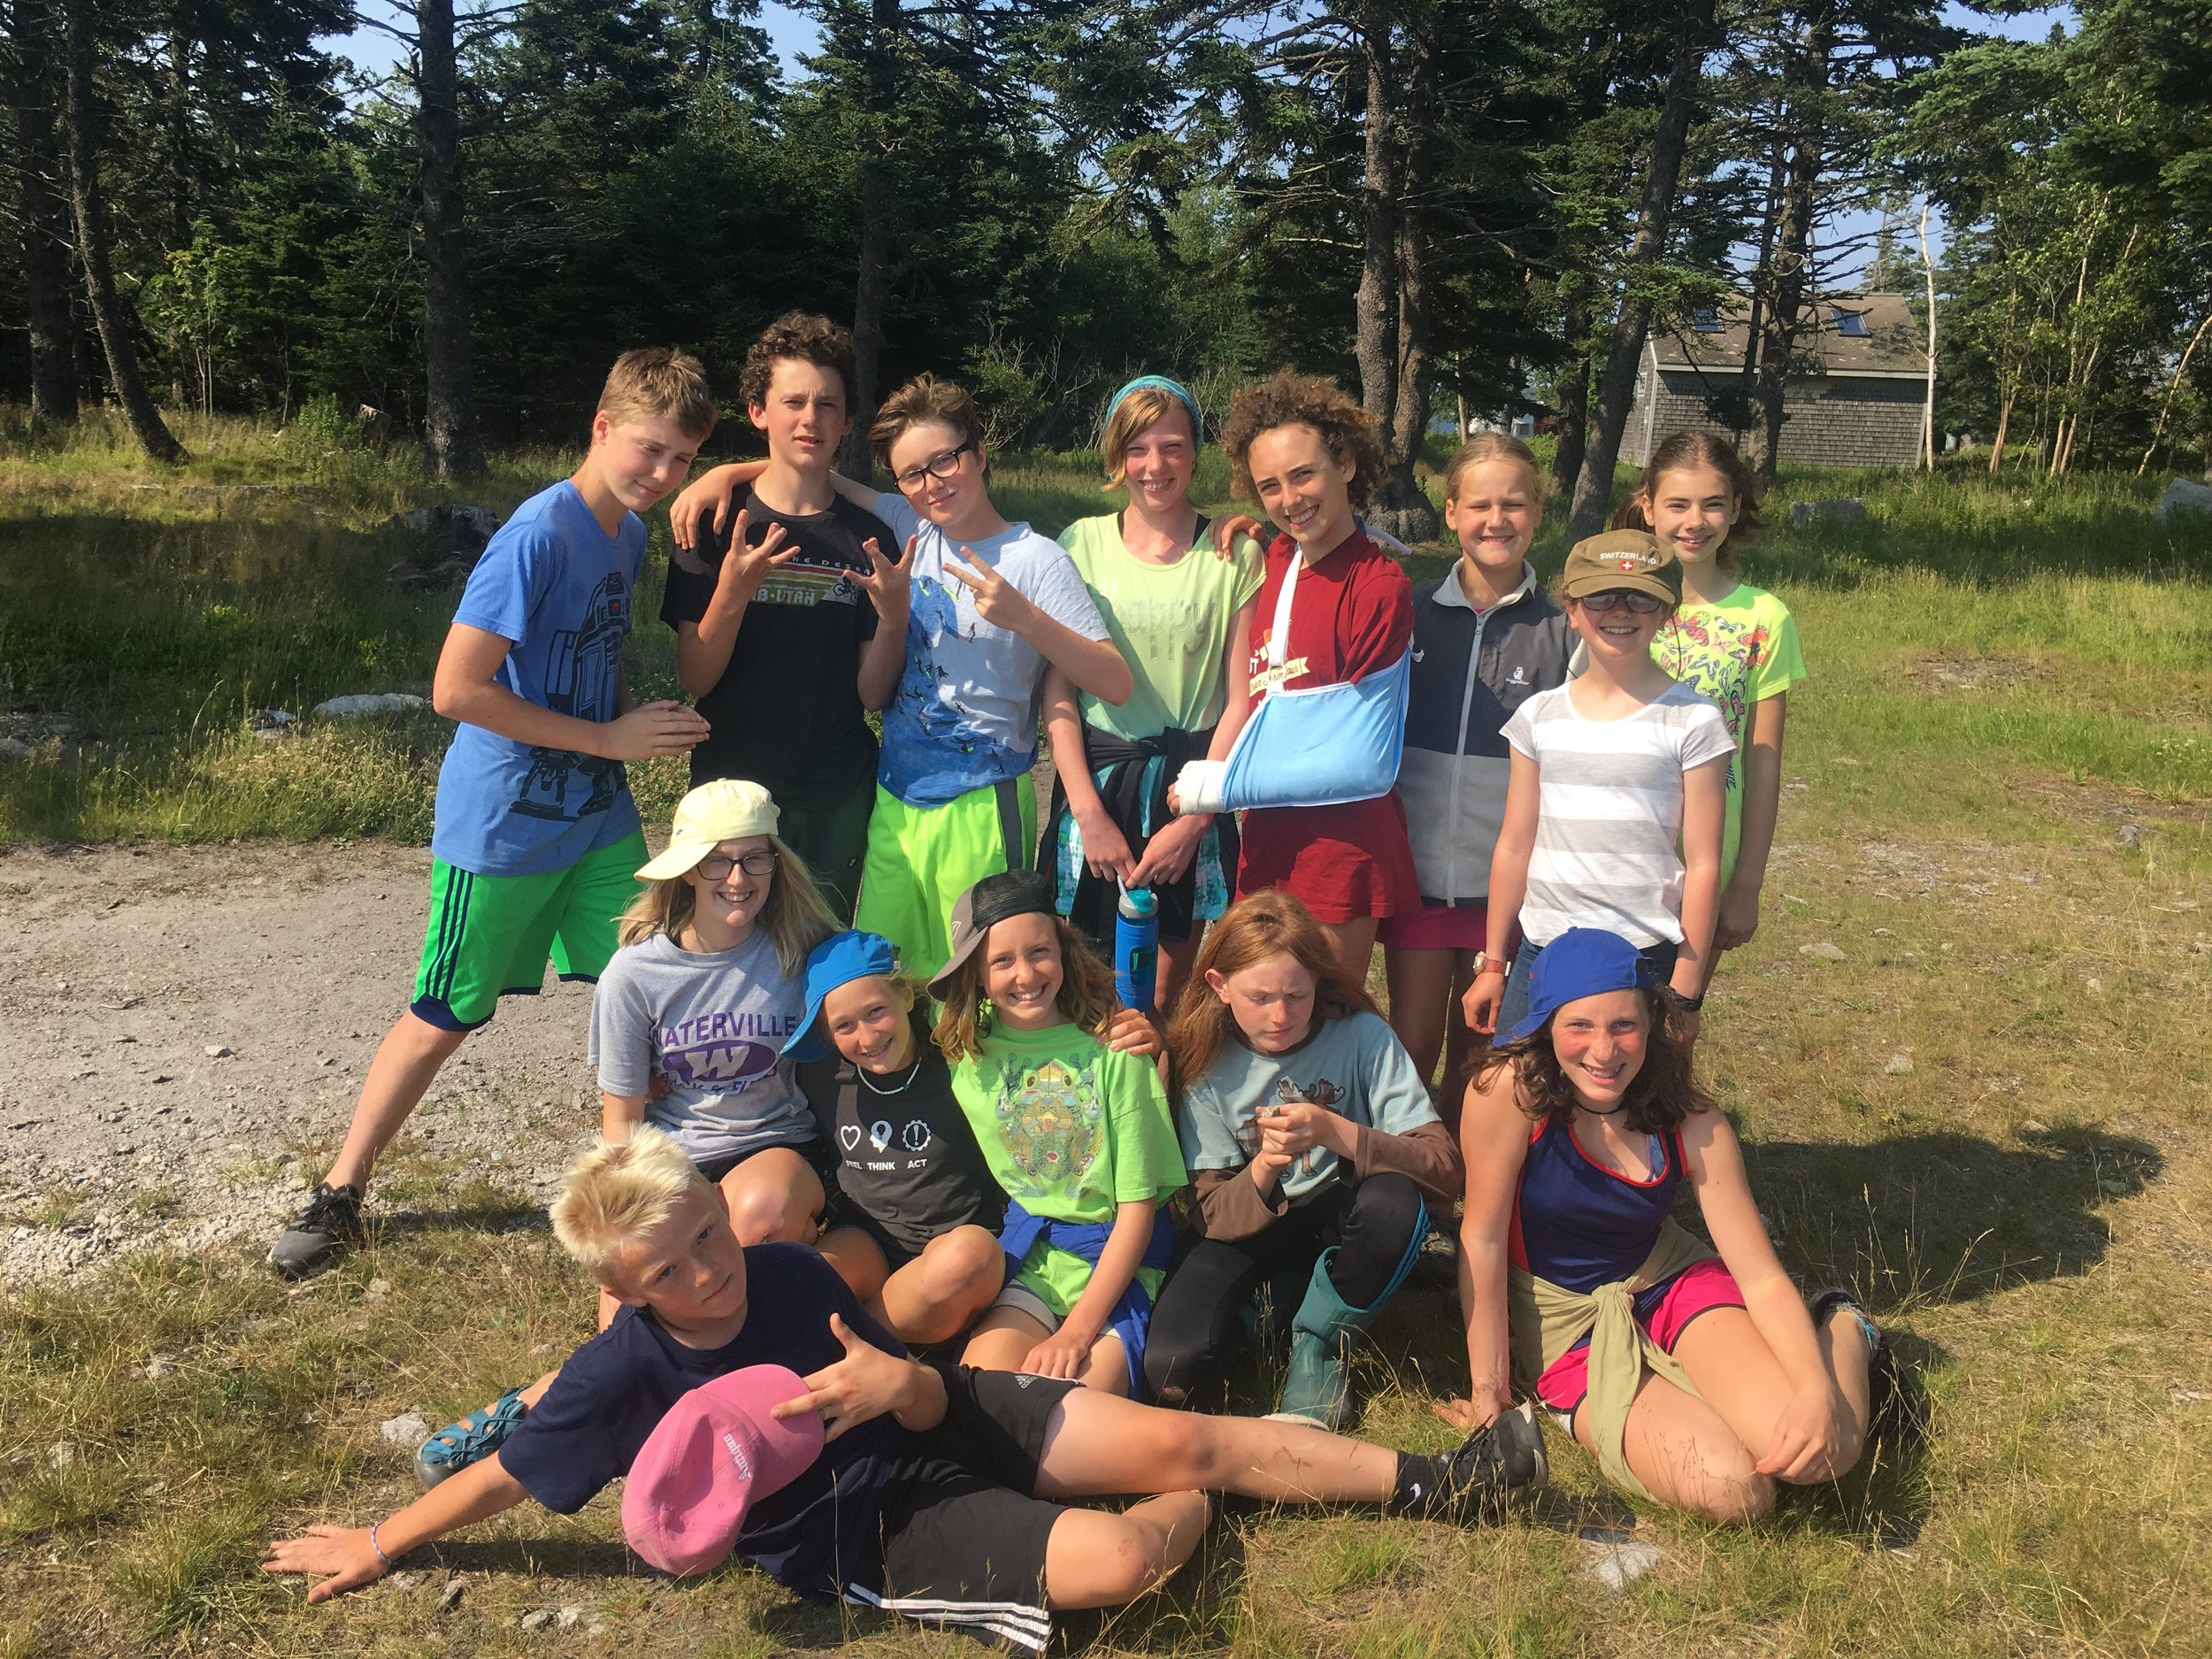 Middle school marine biology striking their poses!